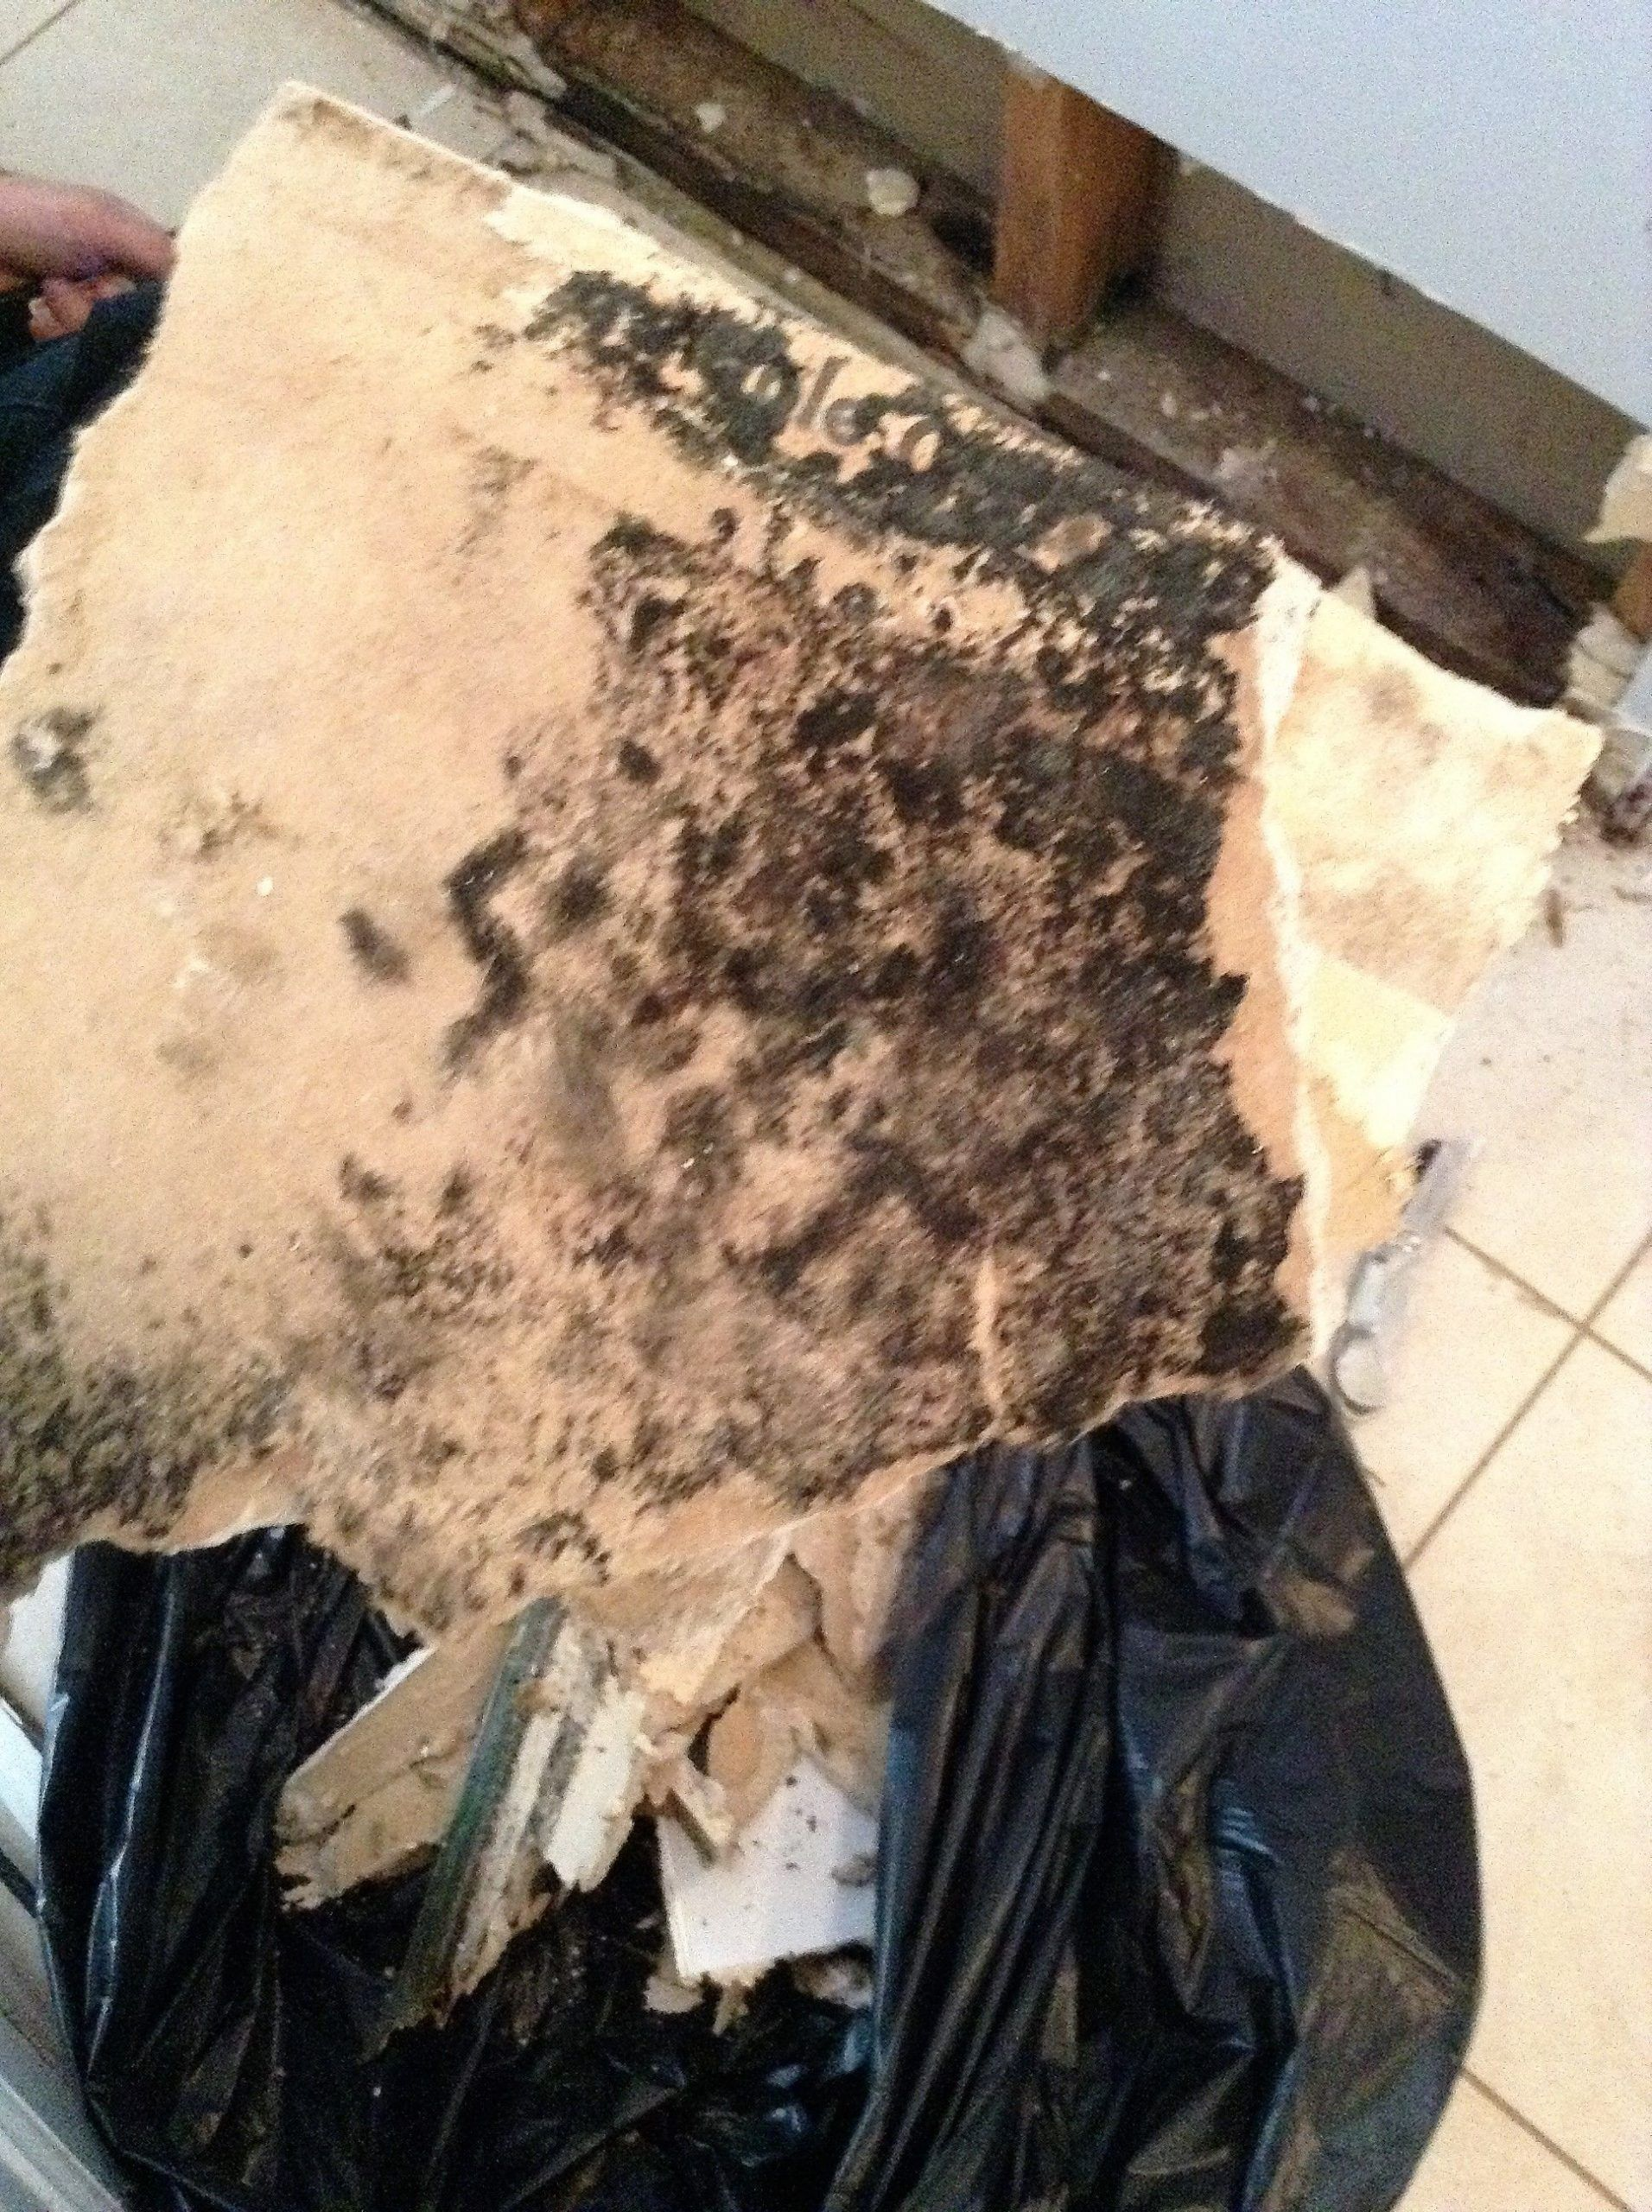 A Slow Leak Behind Kitchen Cabinets In This Brewster Ny Home Was The Source Of In 2020 With Images Mold Remover Remove Black Mold Mold And Mildew Remover